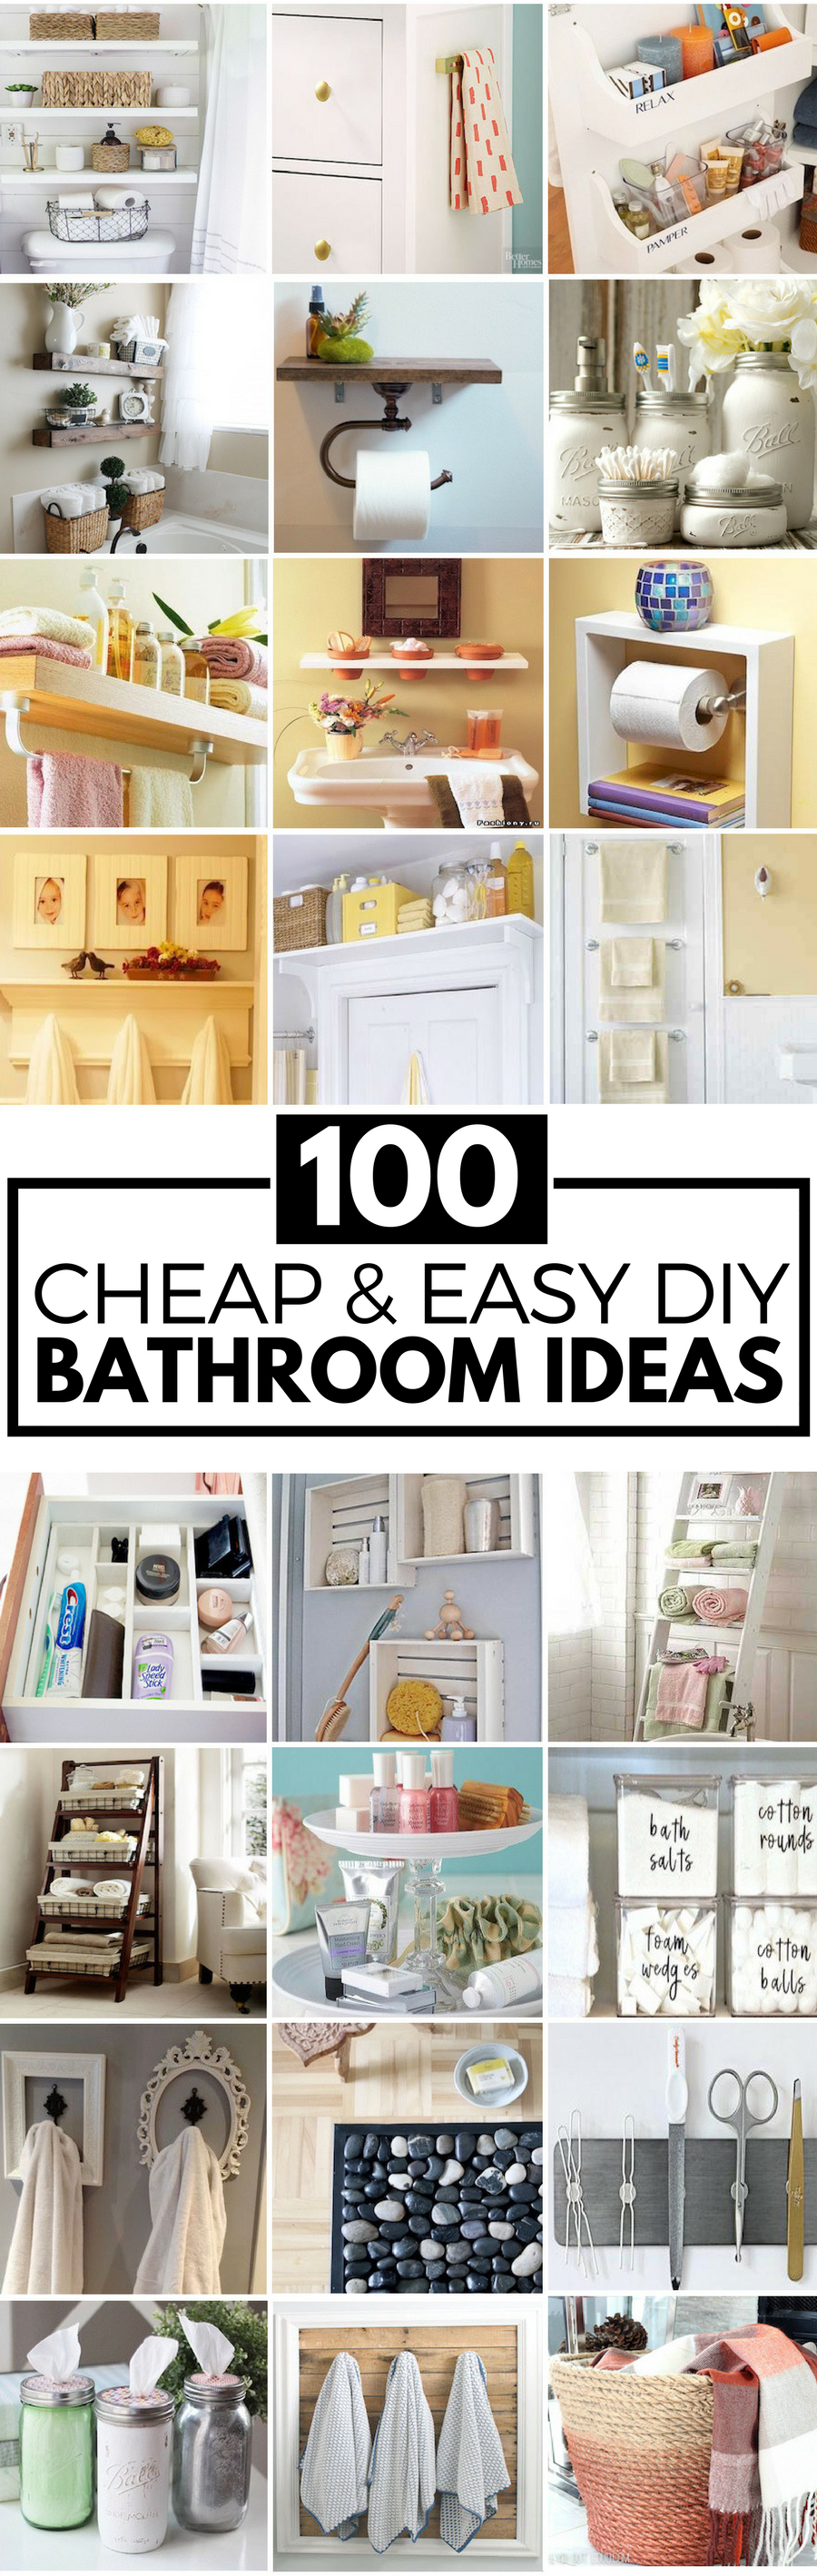 100 Cheap And Easy Diy Bathroom Ideas Diy Bathroom Decor Home Remodeling Diy Diy Bathroom